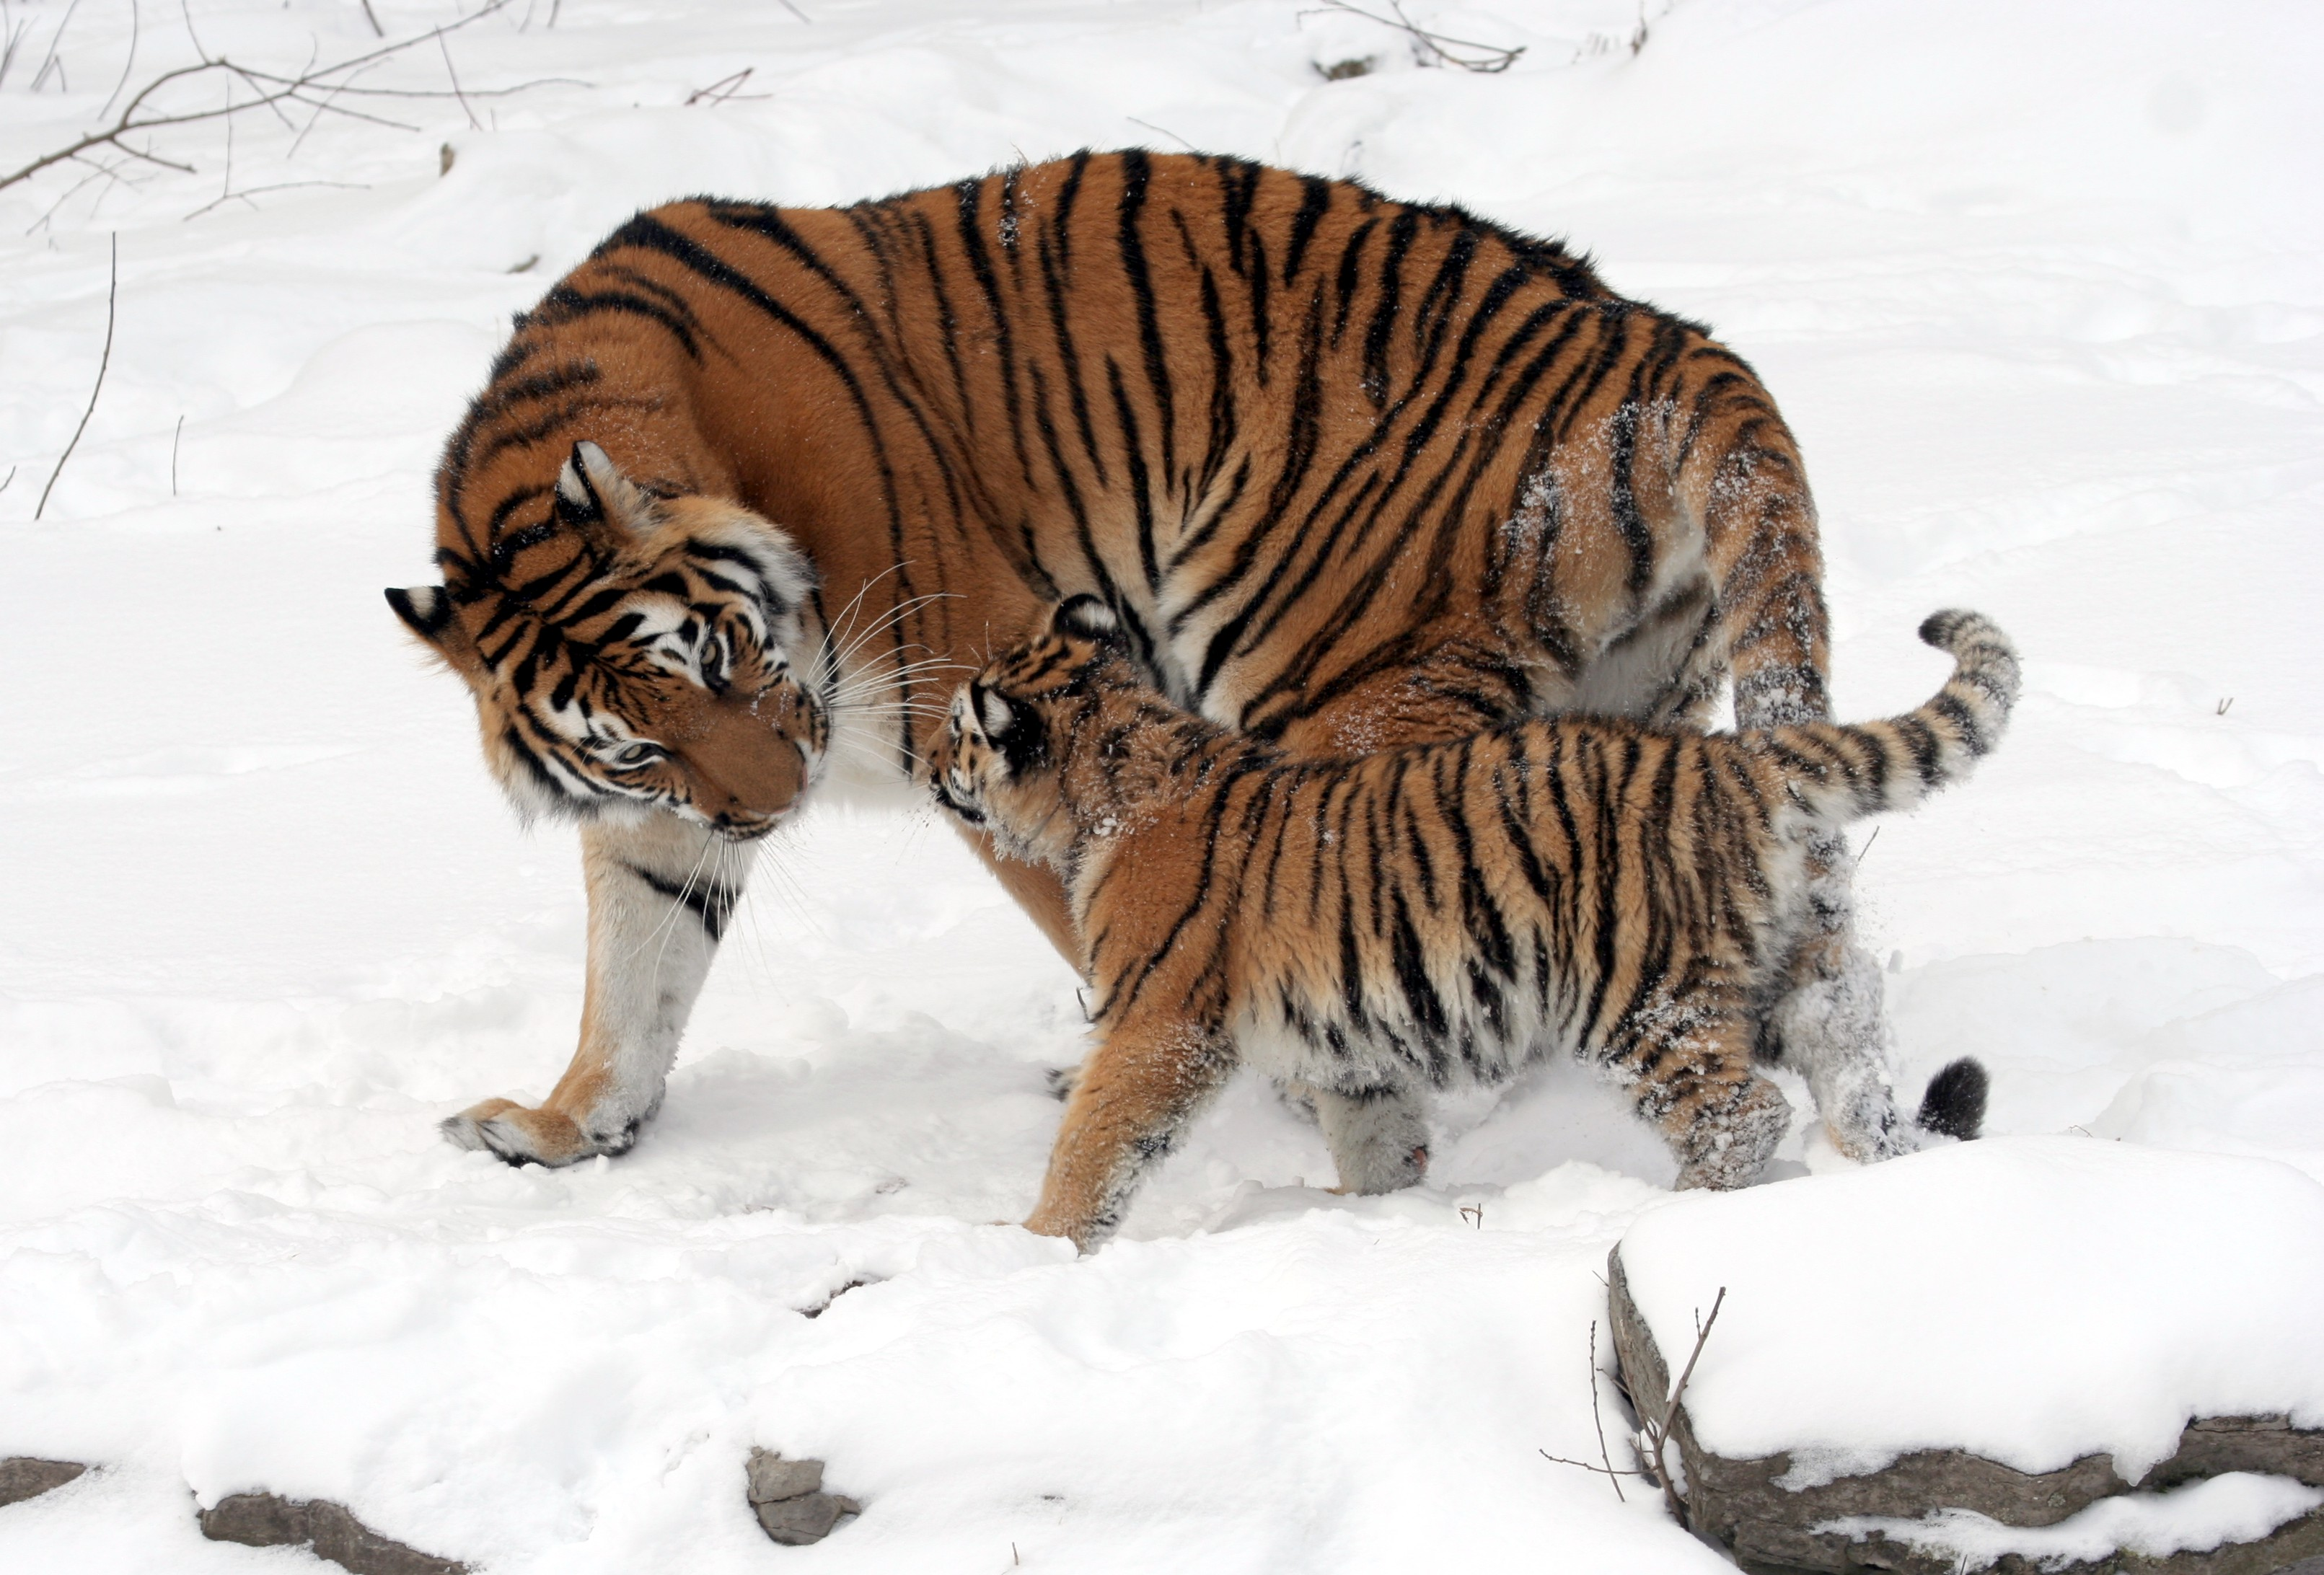 Siberian Tiger Vs Bear Siberian tiger - wikipedia